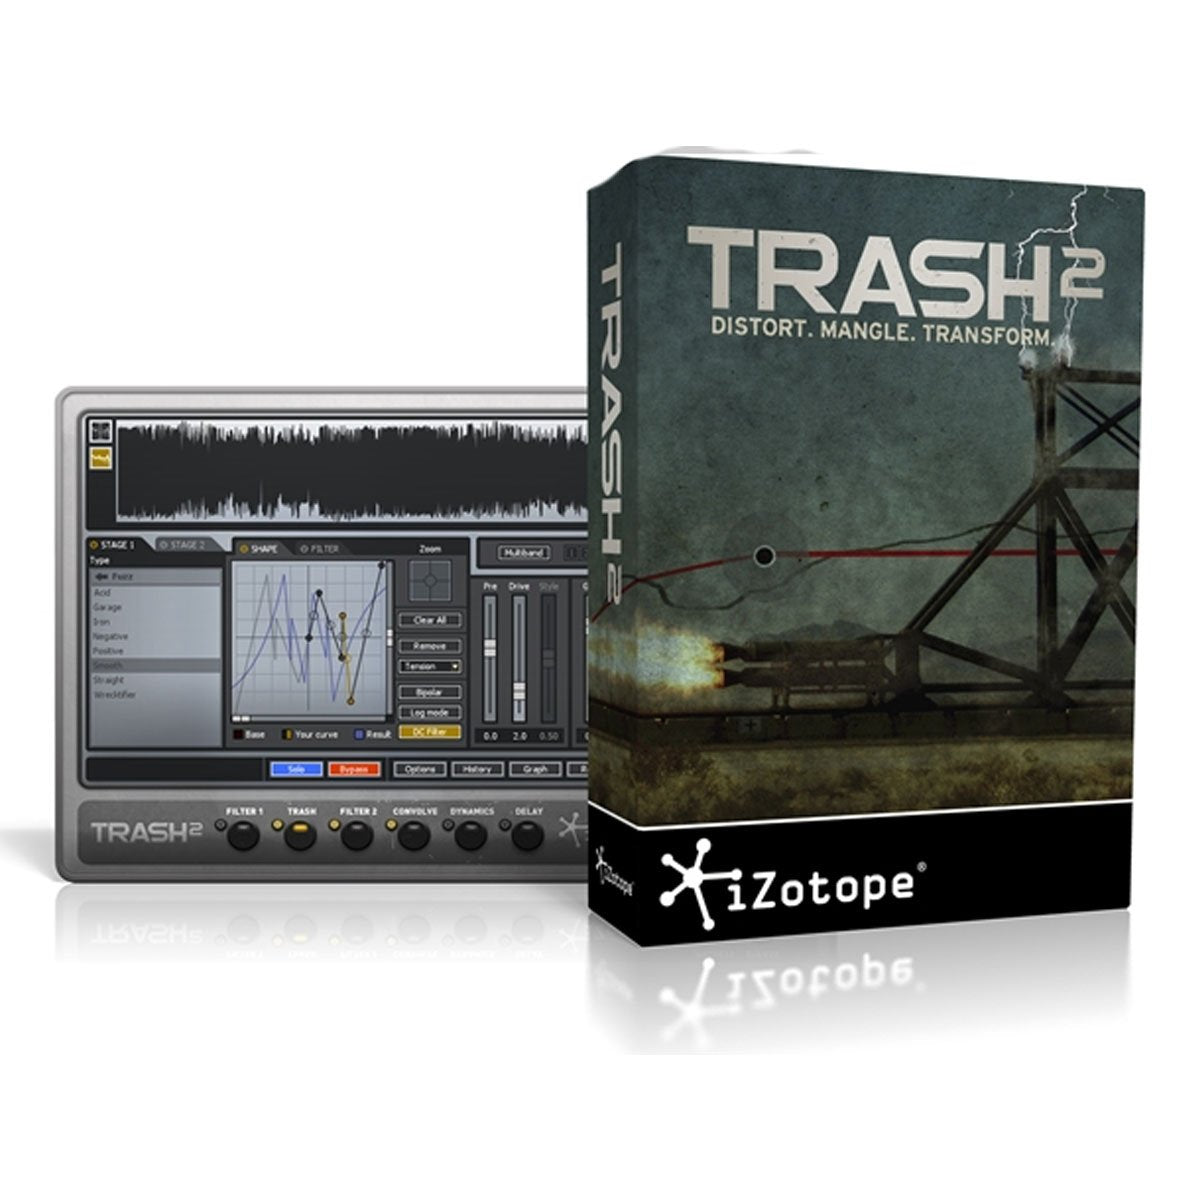 iZotope Trash 2 EDU